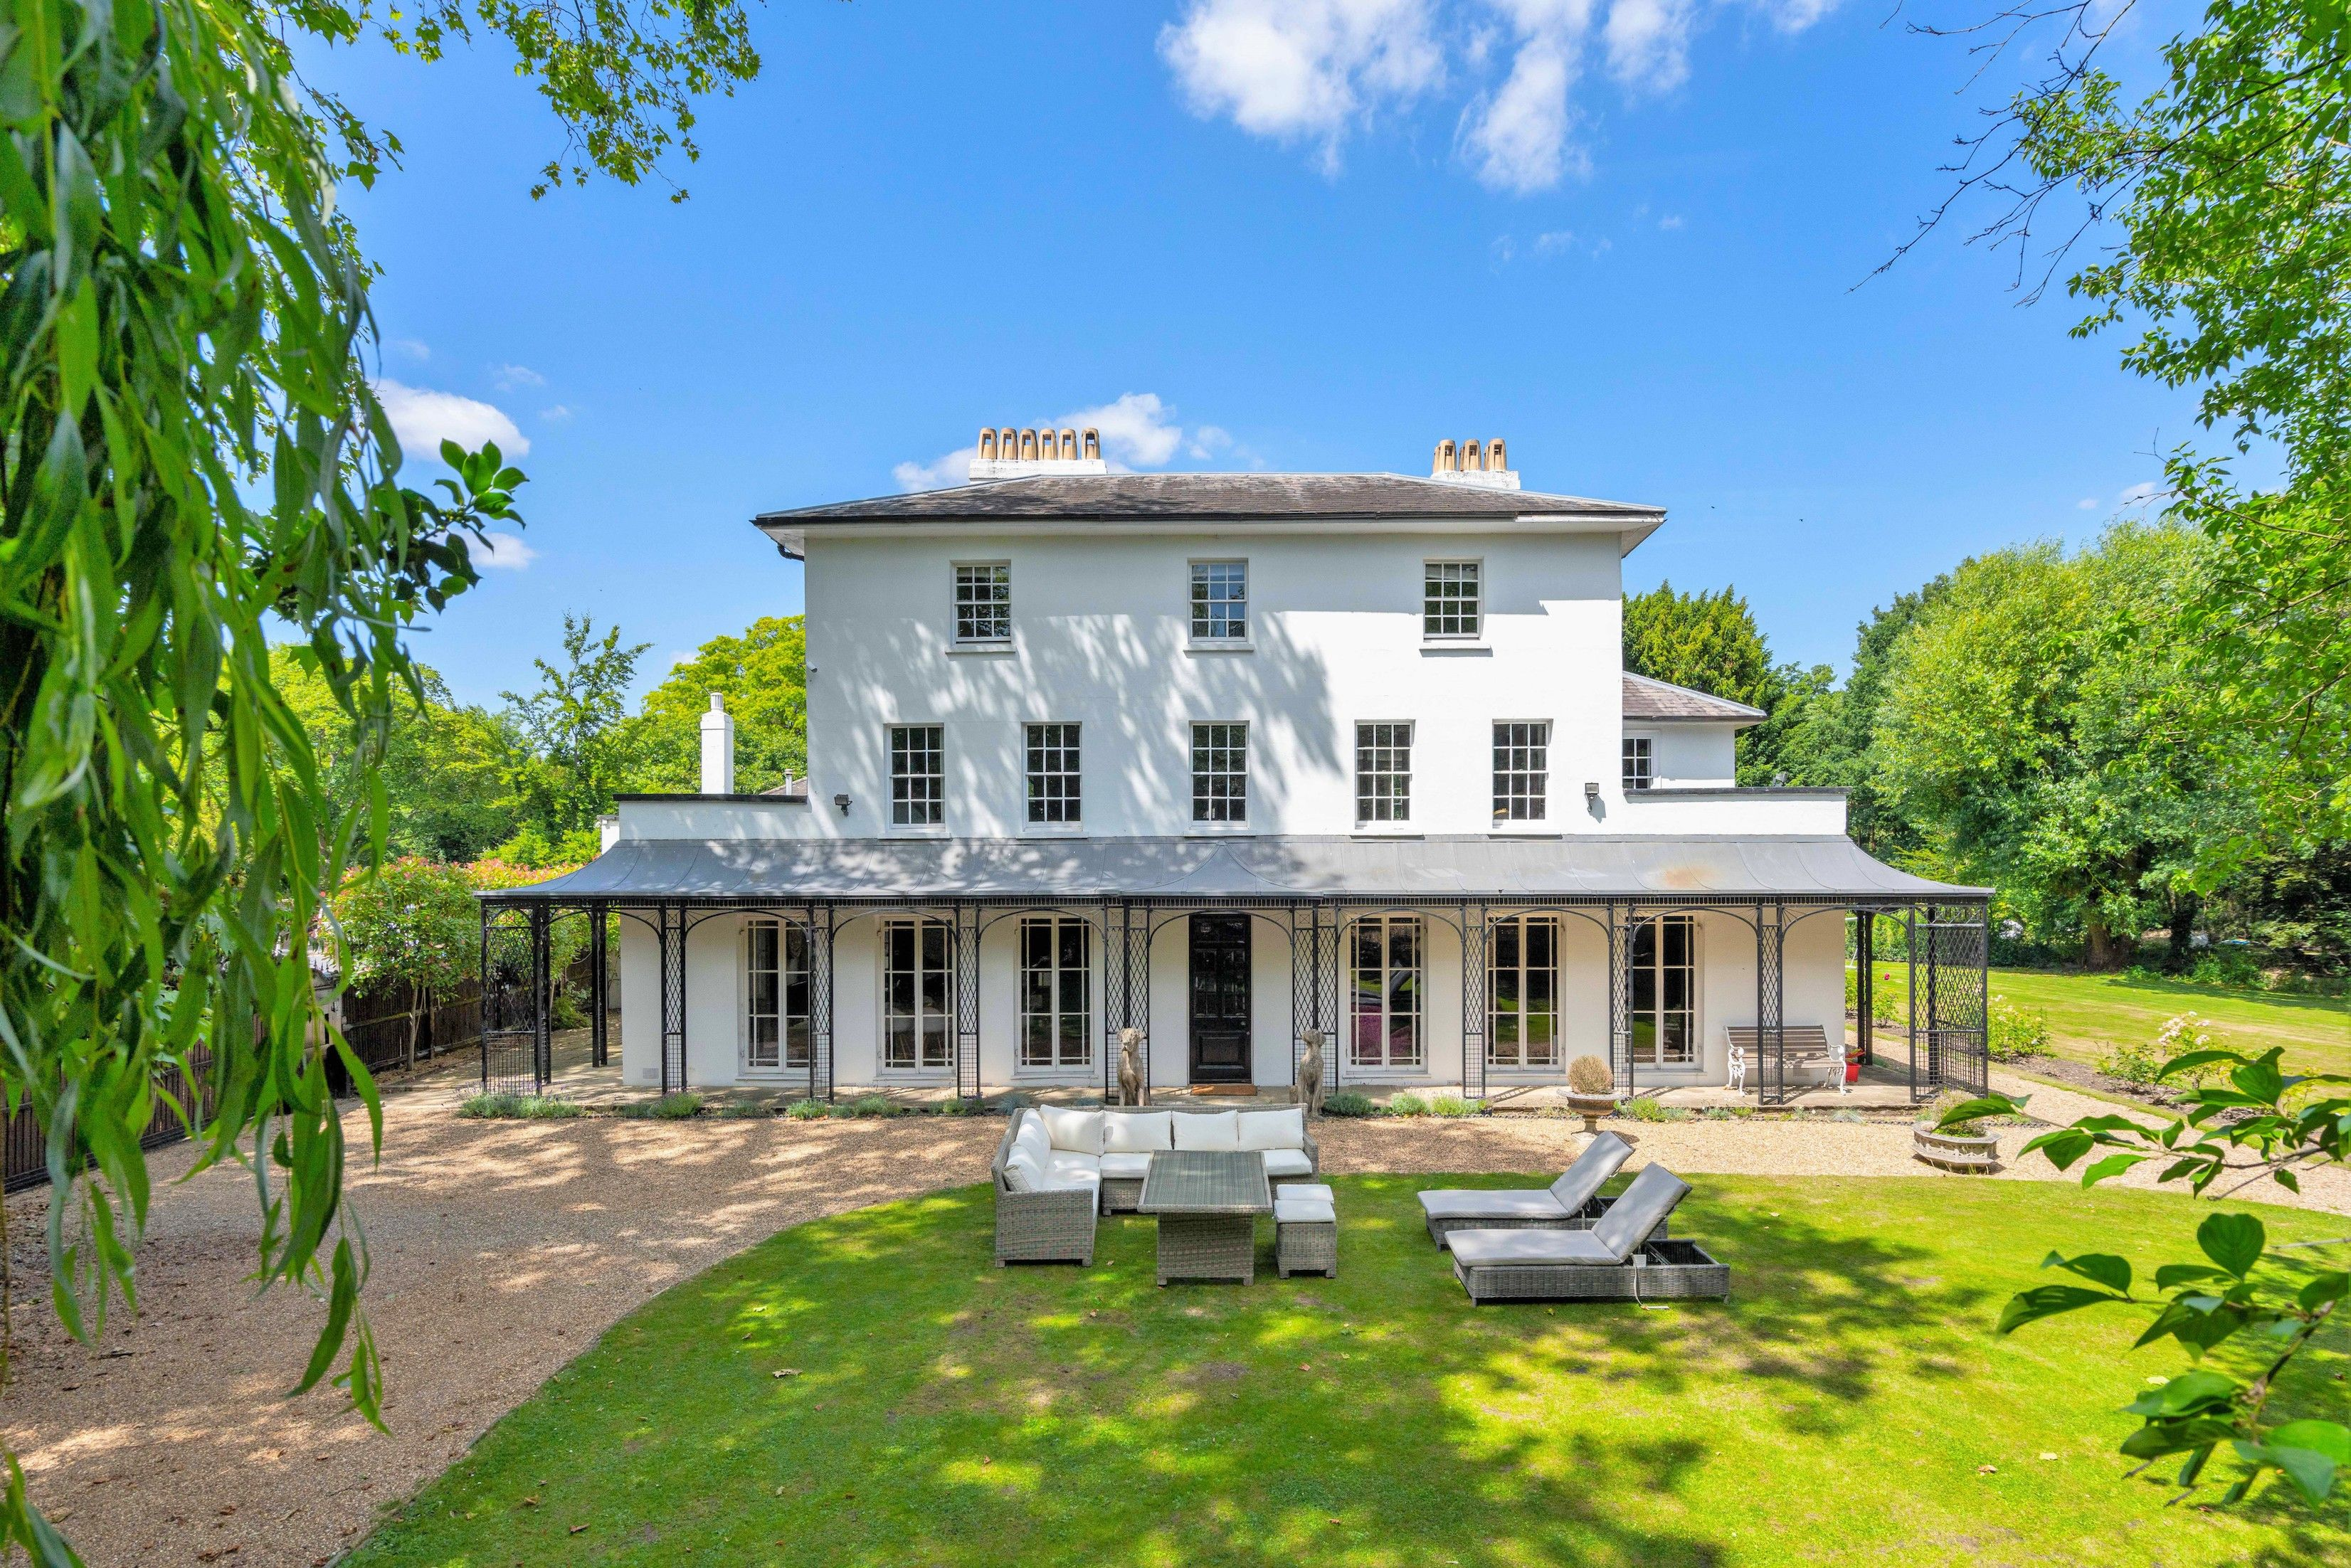 10 spectacular properties for sale with links to the royal family